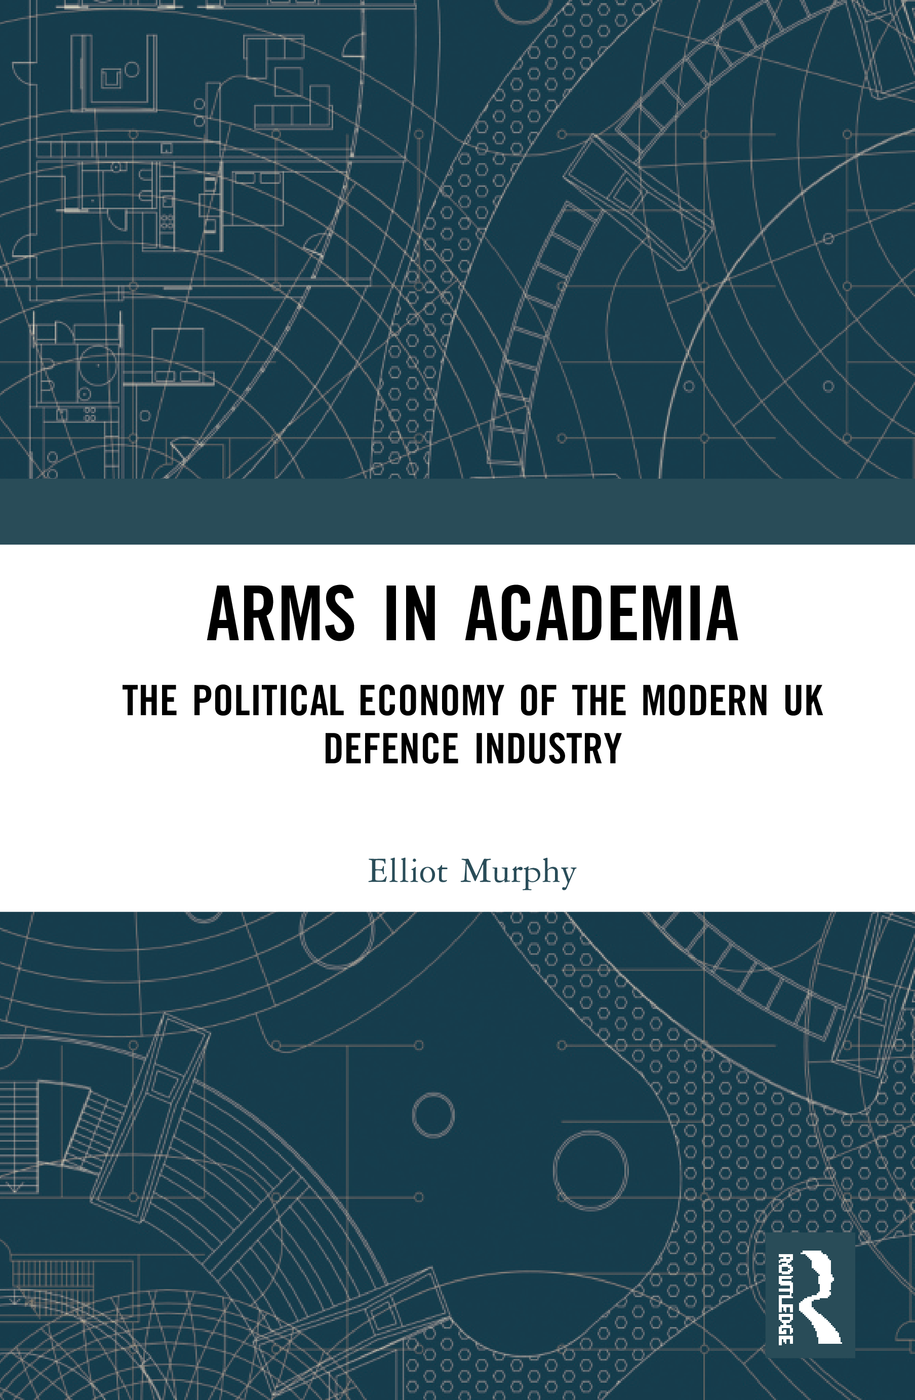 routledgecover